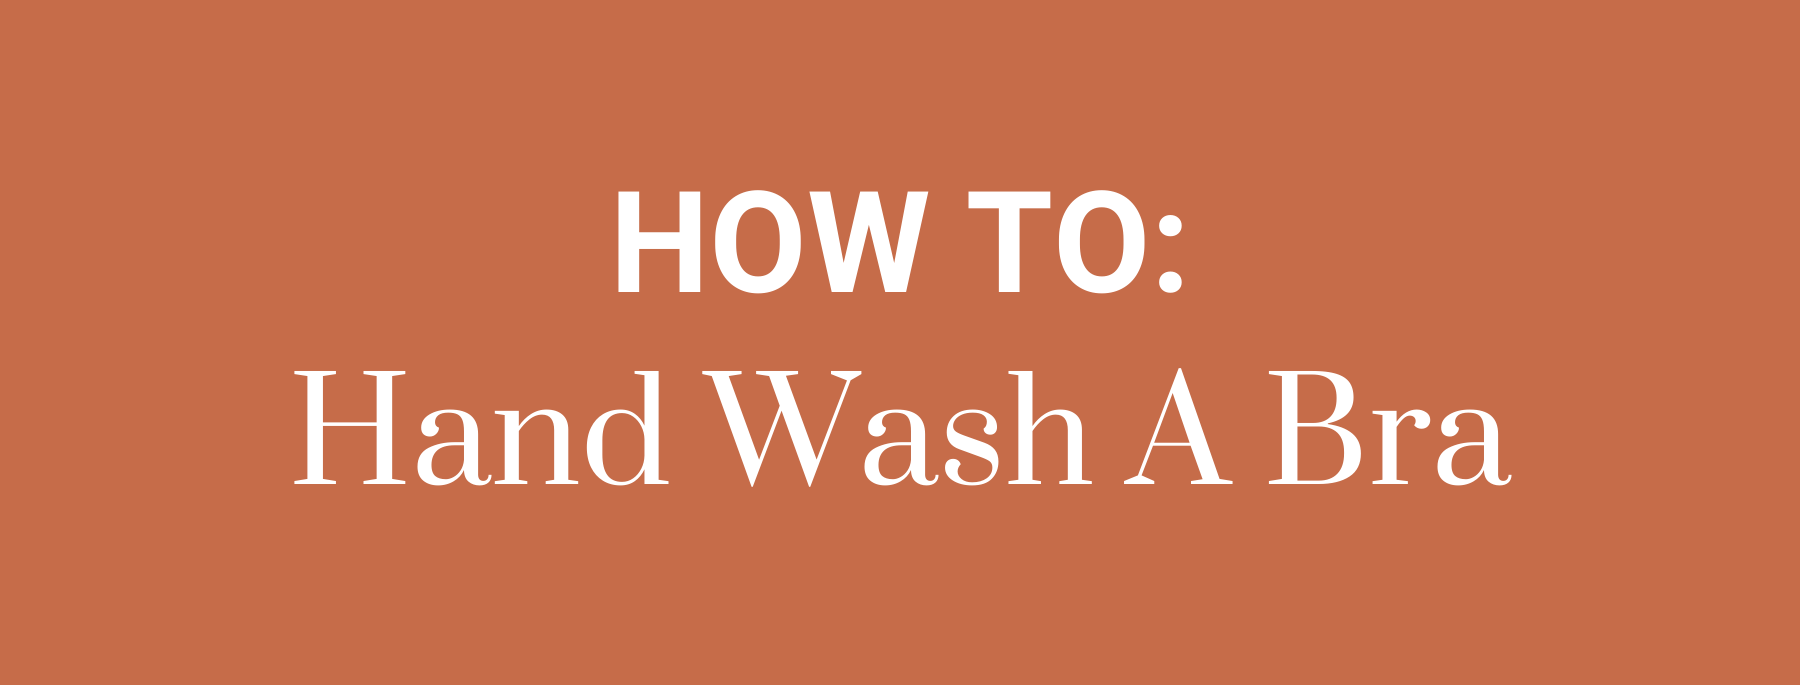 How to: hand wash a bra.